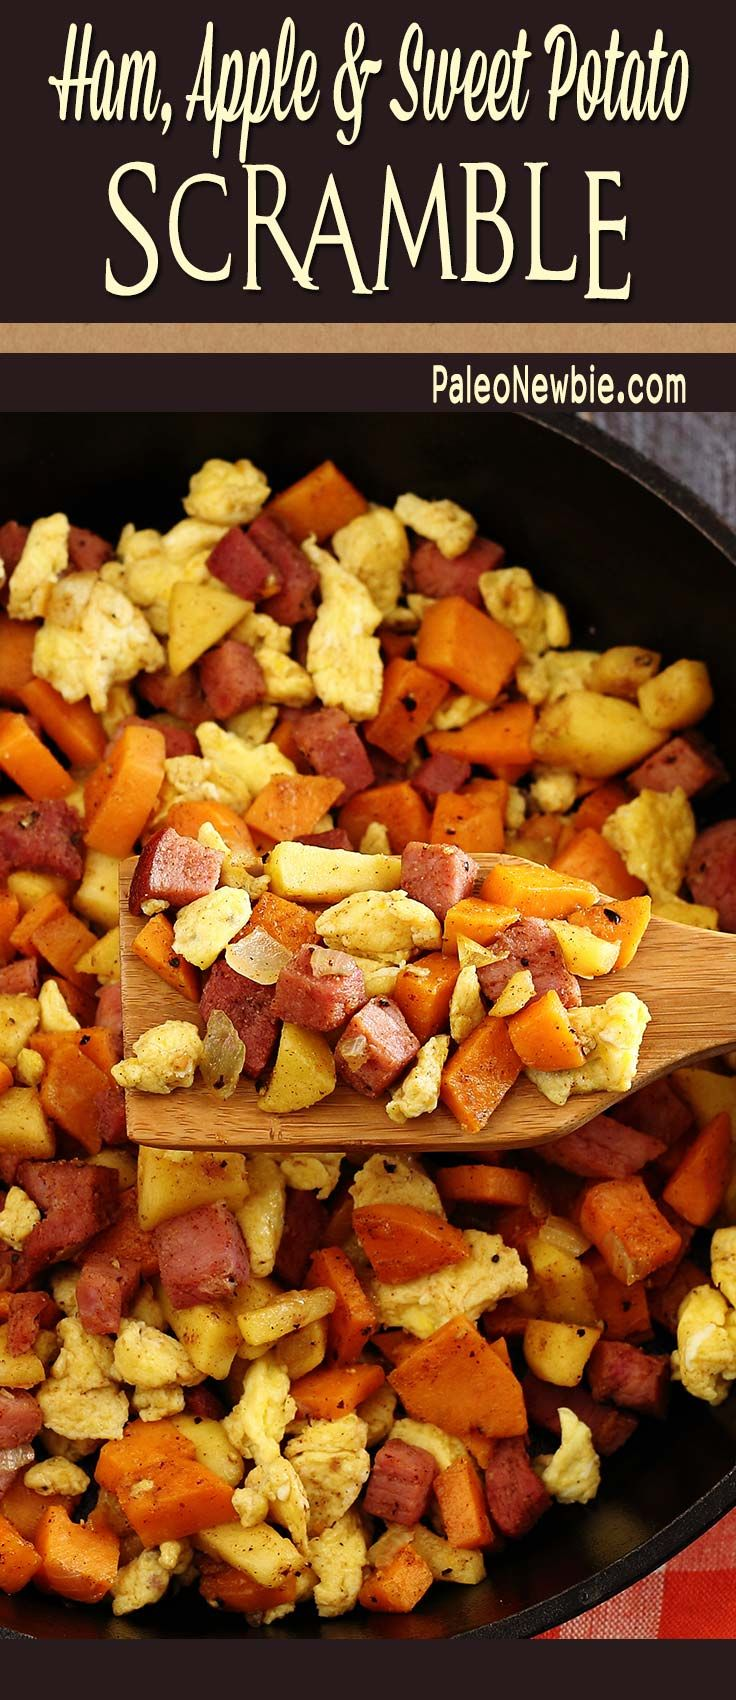 Mix things up with your next pan of scrambled eggs…turn it into an easy paleo & gluten free hash sizzling with wonderful flavors! #paleo #glutenfree